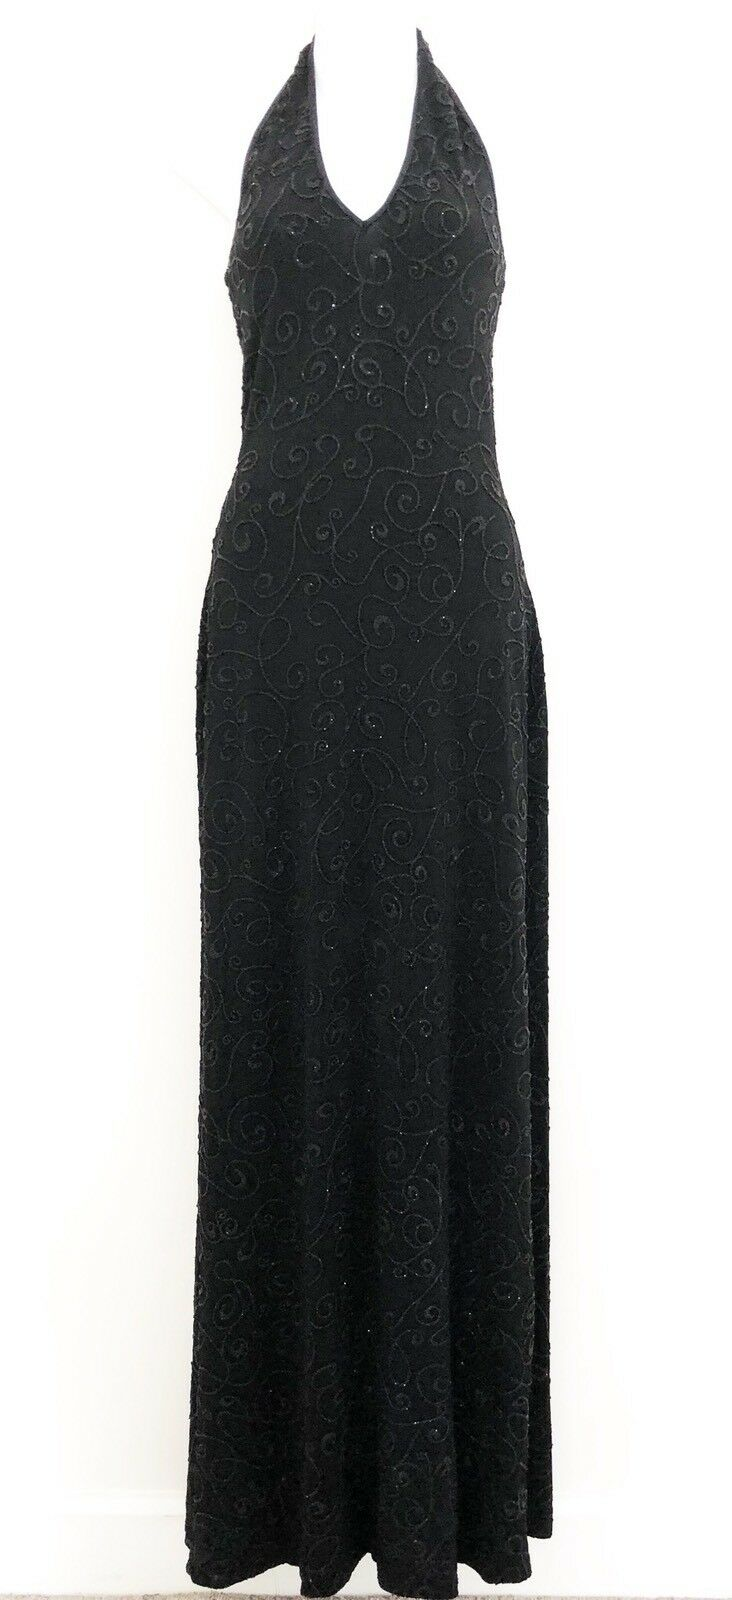 Alexia Admor for CACHE damen Evening Gown Dress Sz XS schwarz Sleeveless Stretch